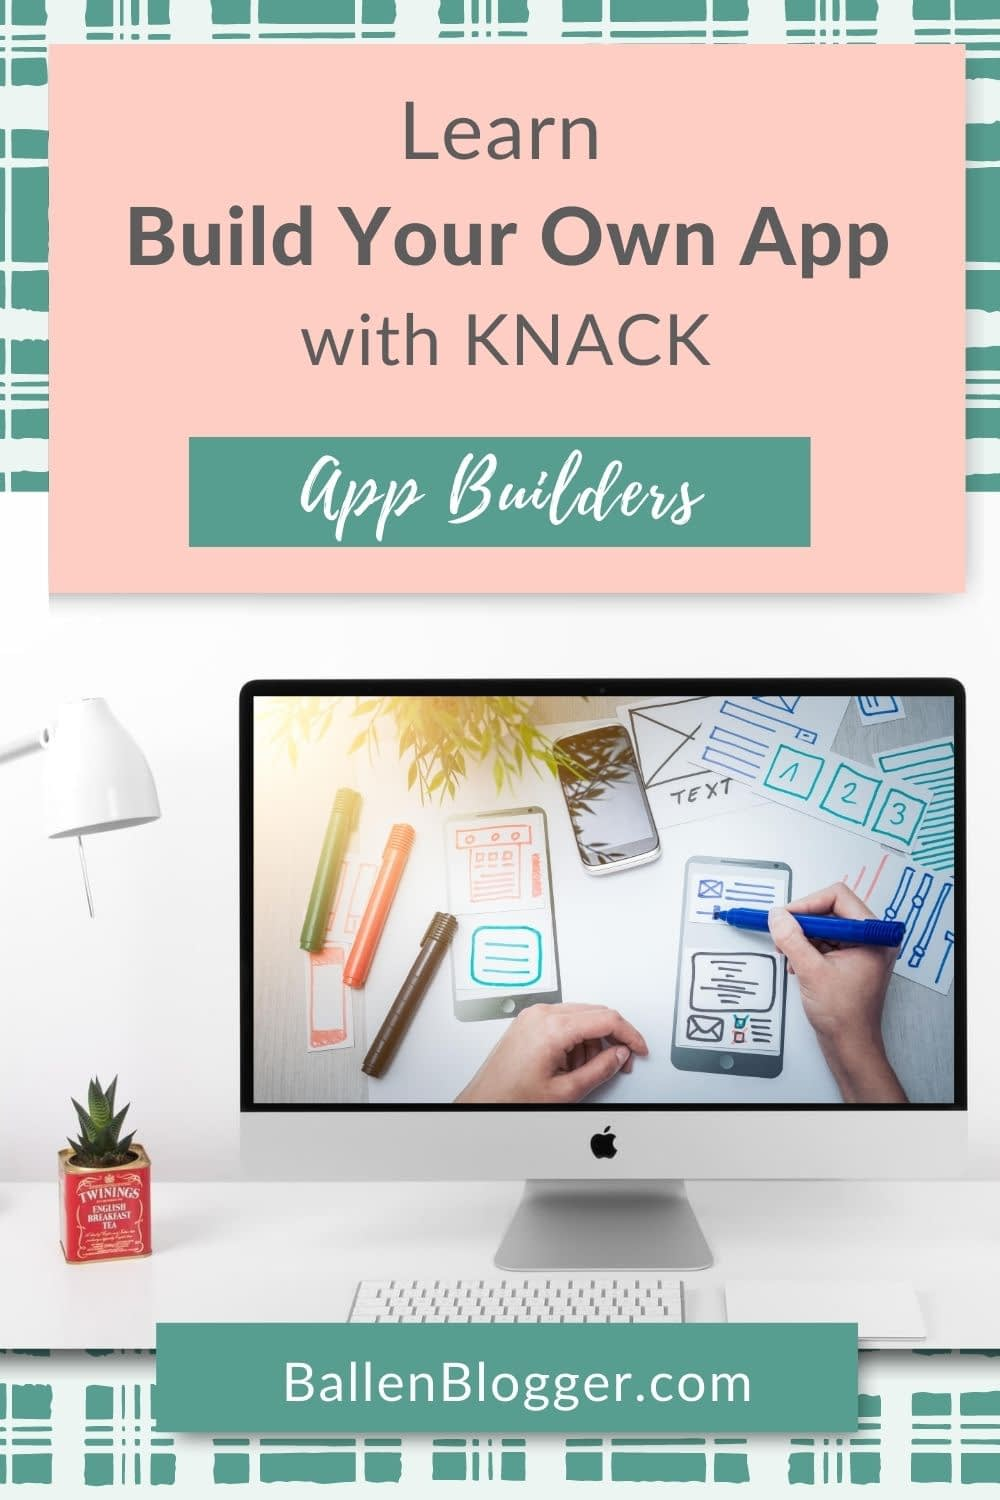 Instead, Knack helps people build their apps. This customizability is critical.